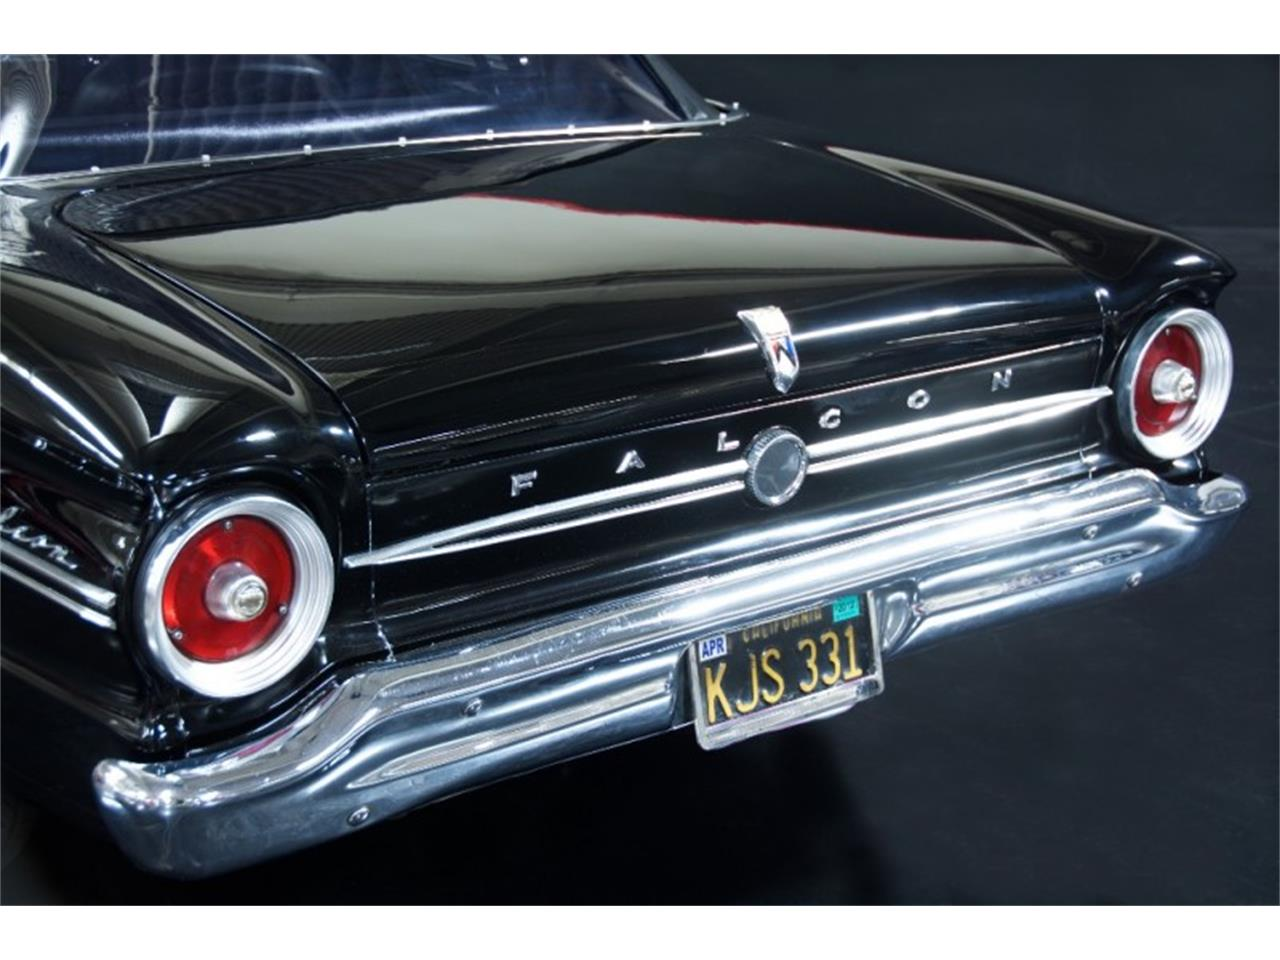 1963 Ford Falcon for sale in Milpitas, CA – photo 28